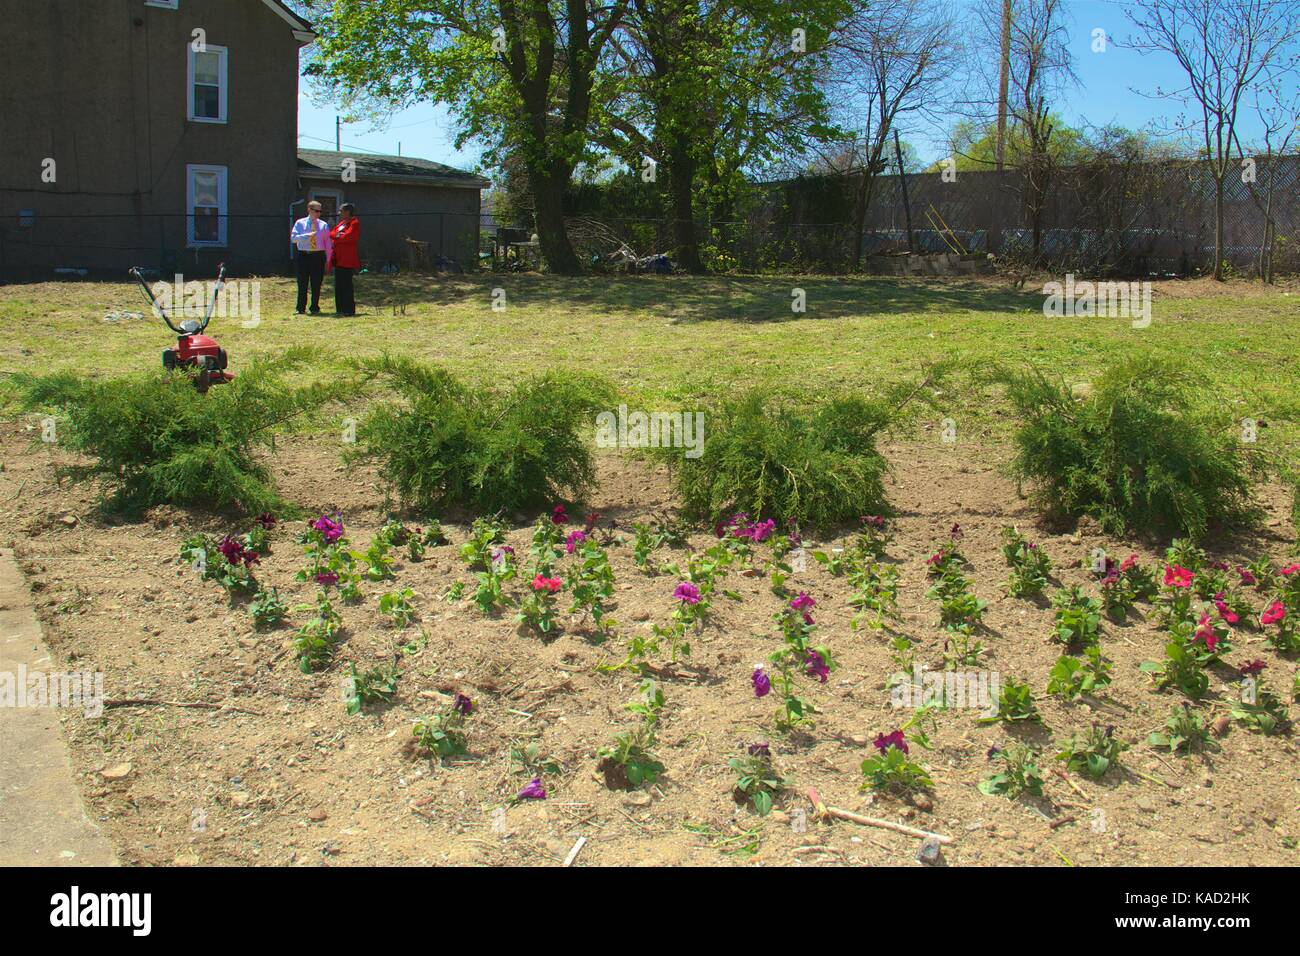 April 26, 2013 - Philadelphia, PA, USA: Volunteers plant a small ornamental garden at the corner of a newly cleaned - Stock Image